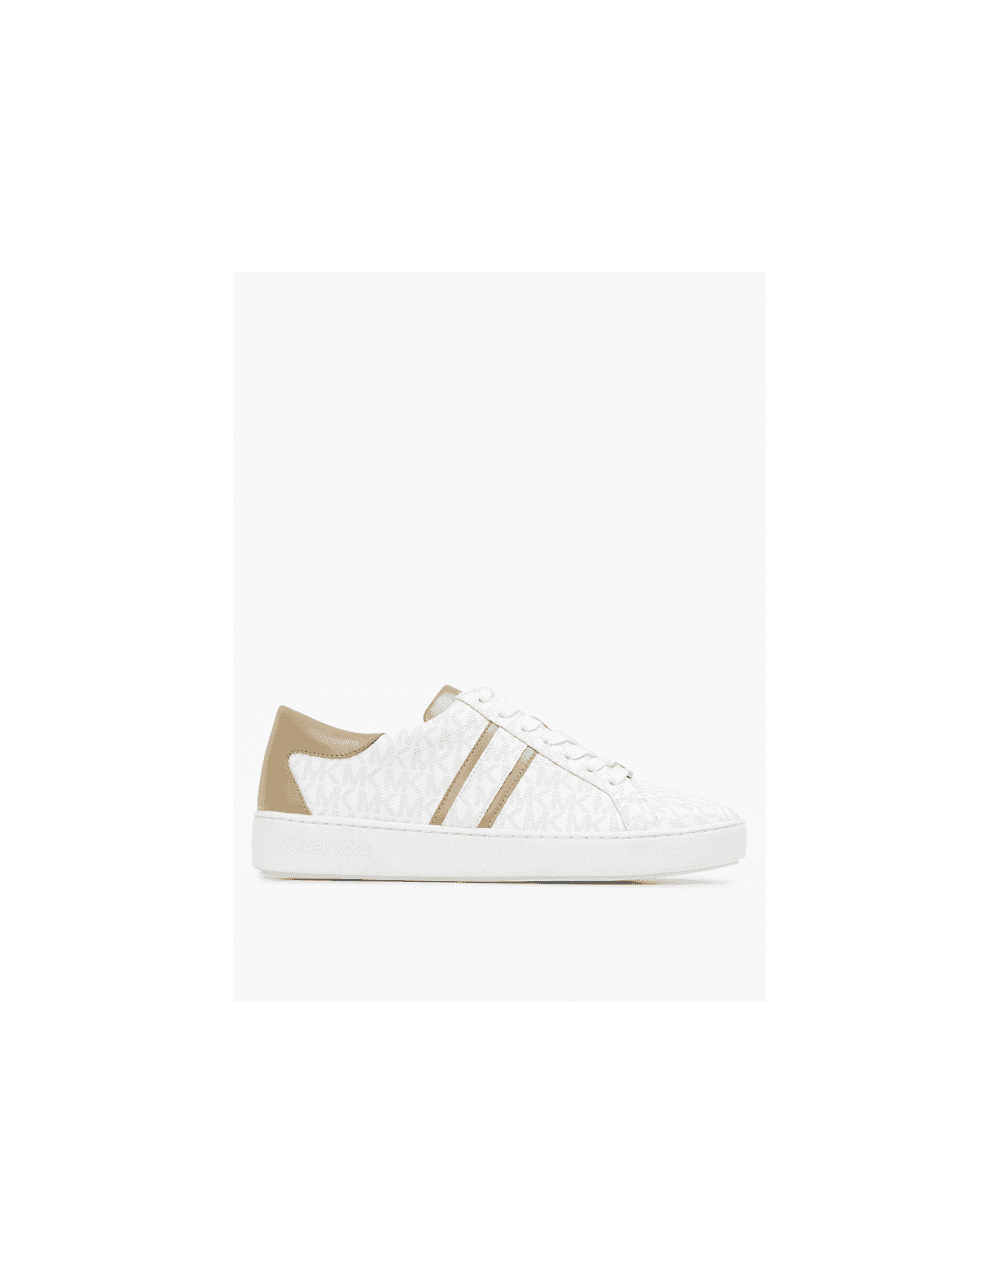 Michael Kors Leathers KEATON STRIPE TRAINER